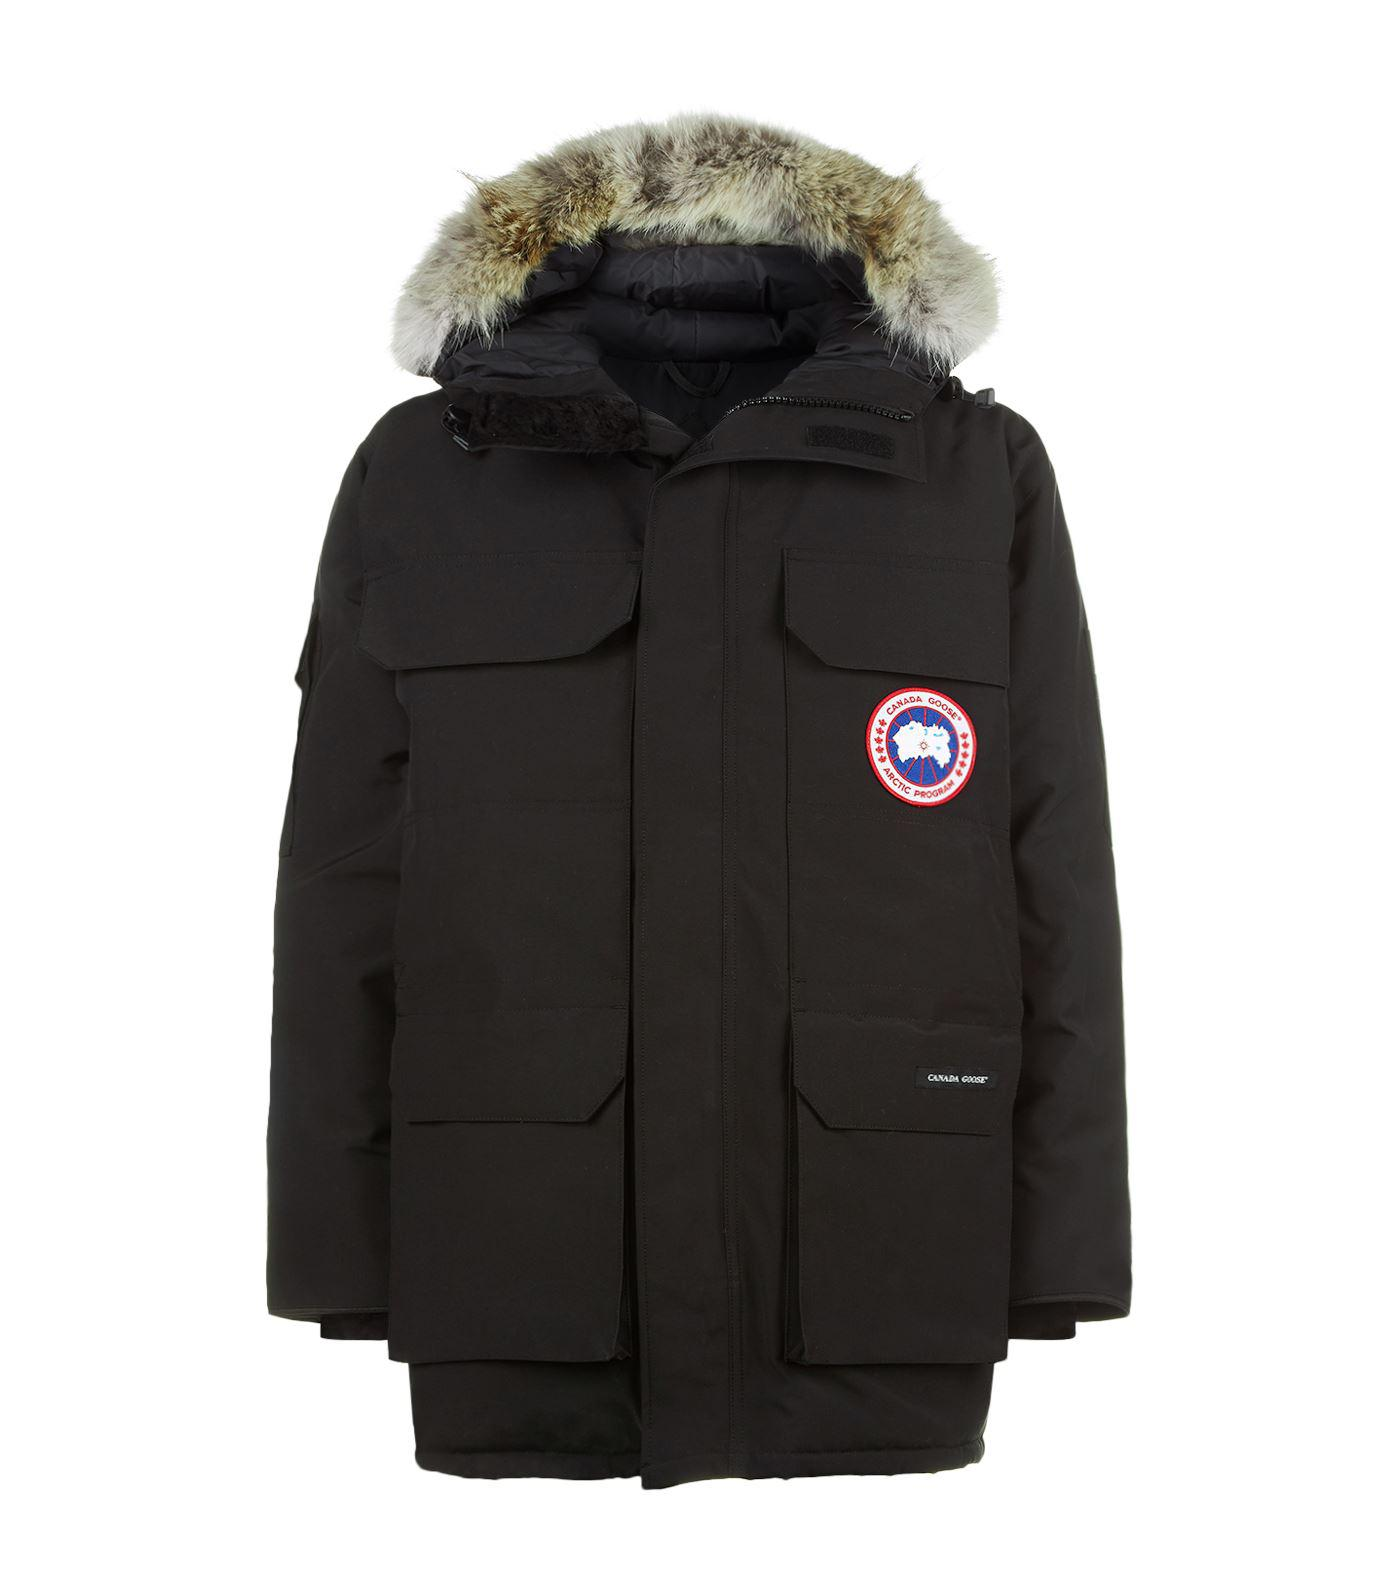 Canada Goose Goose Expedition Parka in Black for Men - Lyst